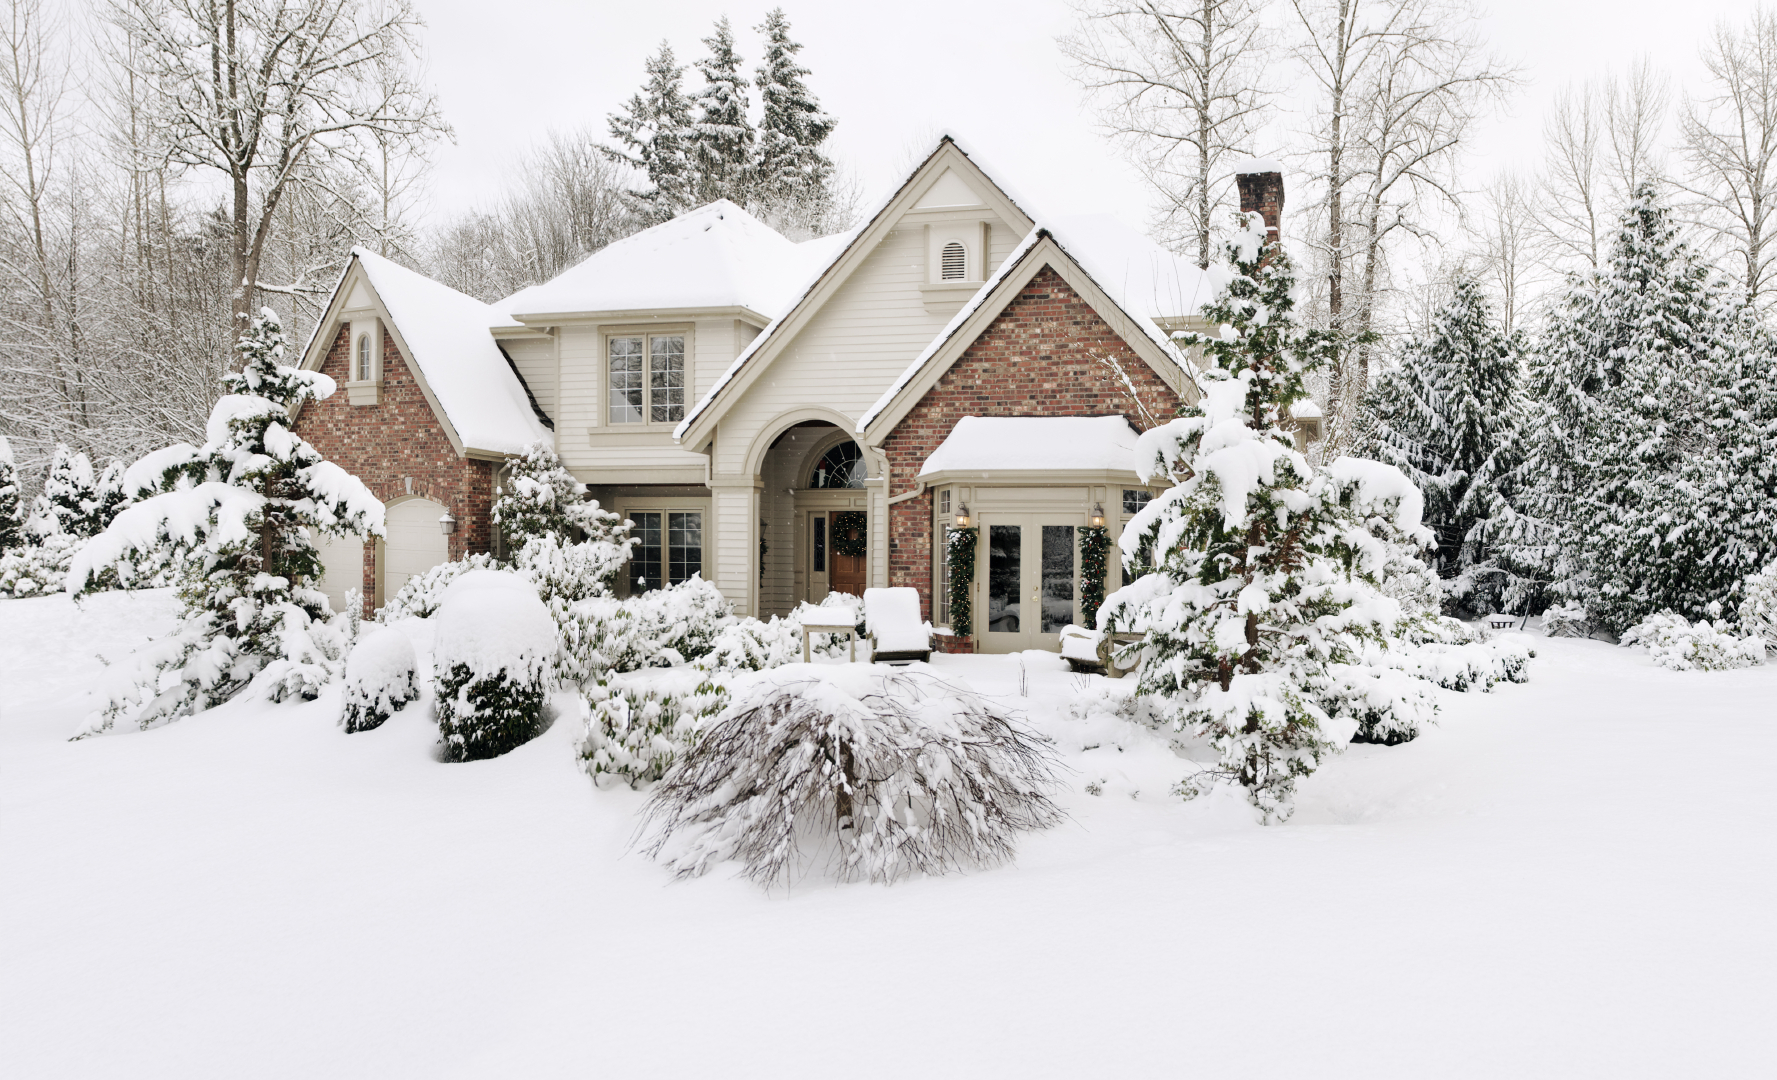 Why Winter Might Be The Best Time To List Your Home